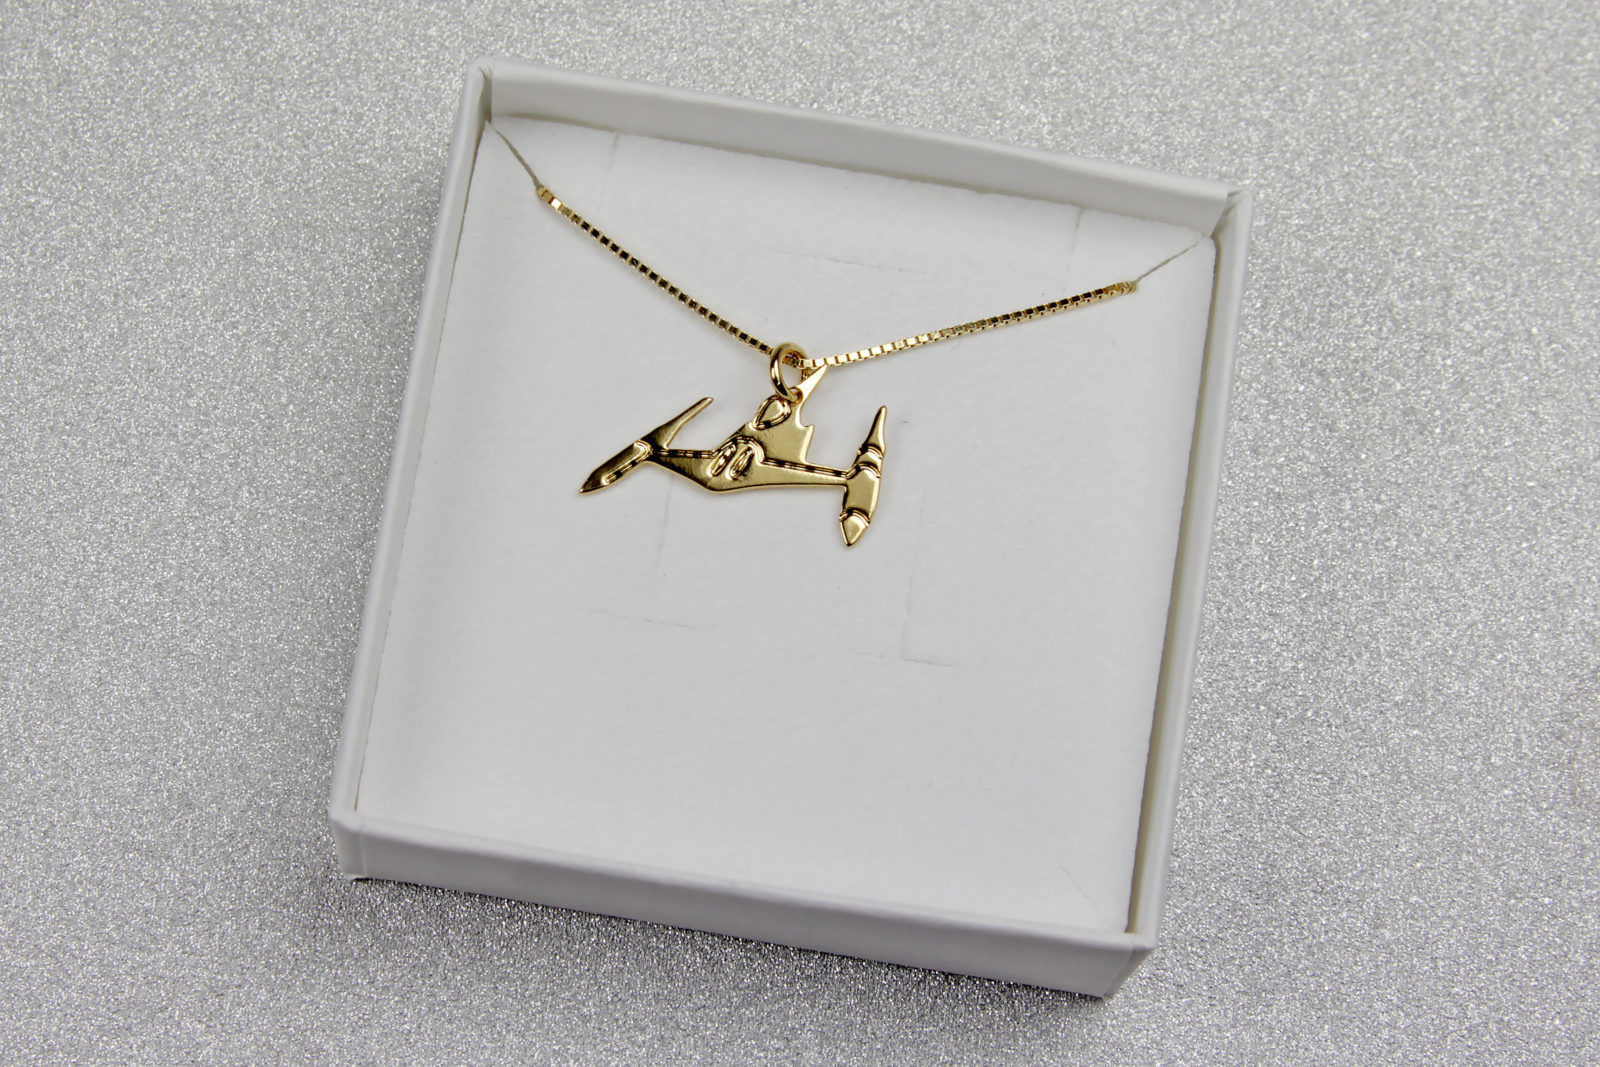 Malaika Raiss Star Wars Naboo Starfighter Necklace